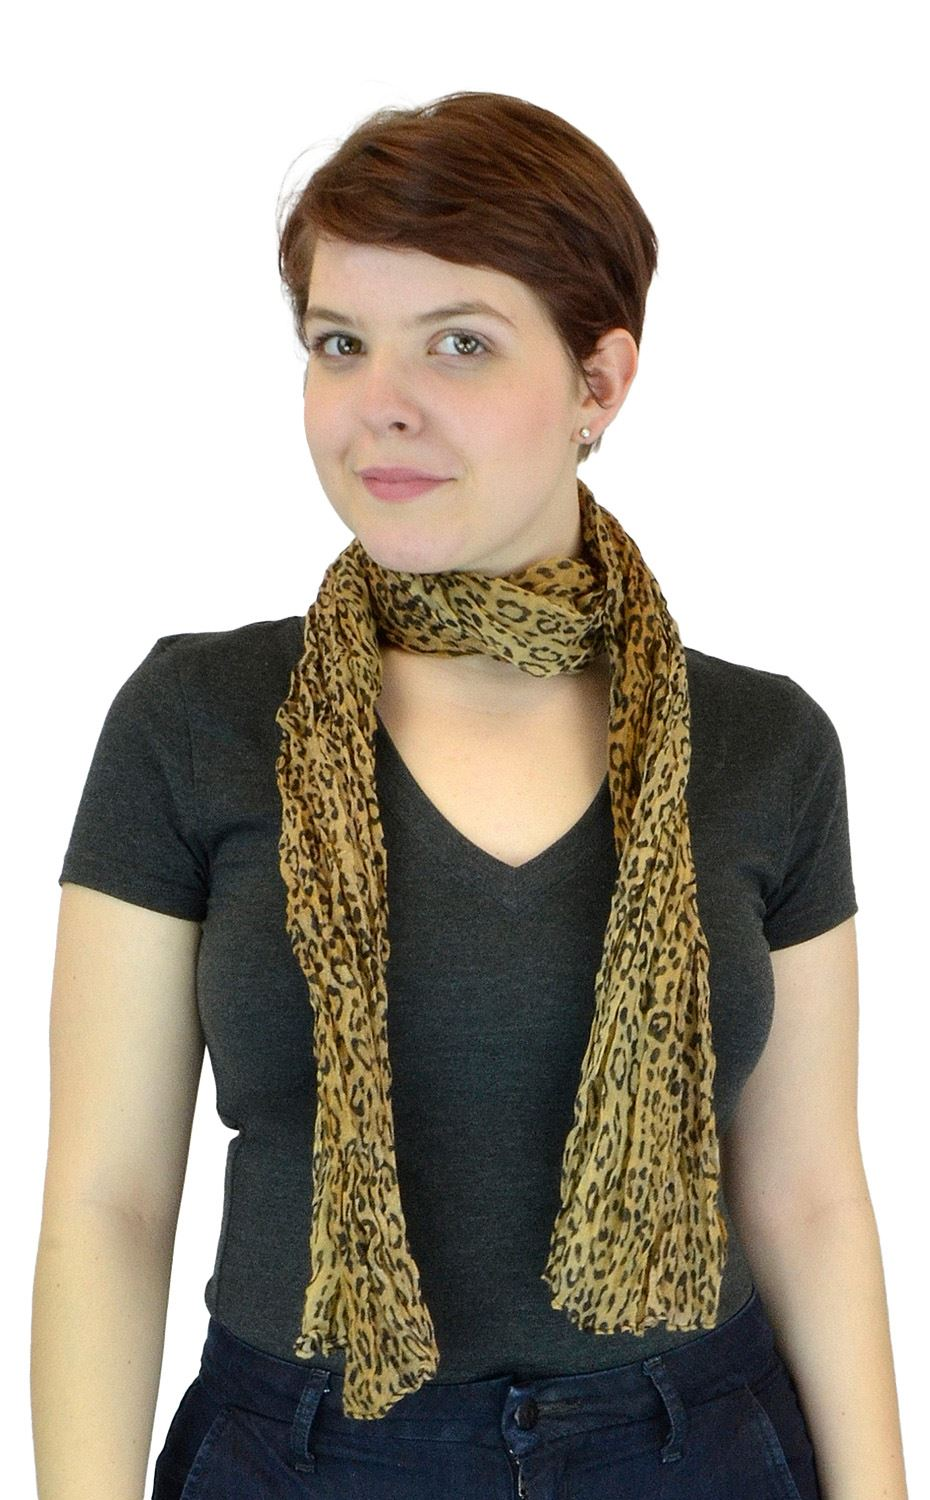 Belle Donne - Women's Leopard Pattern Sheer Polyester Scarf Formal Casual - Camel